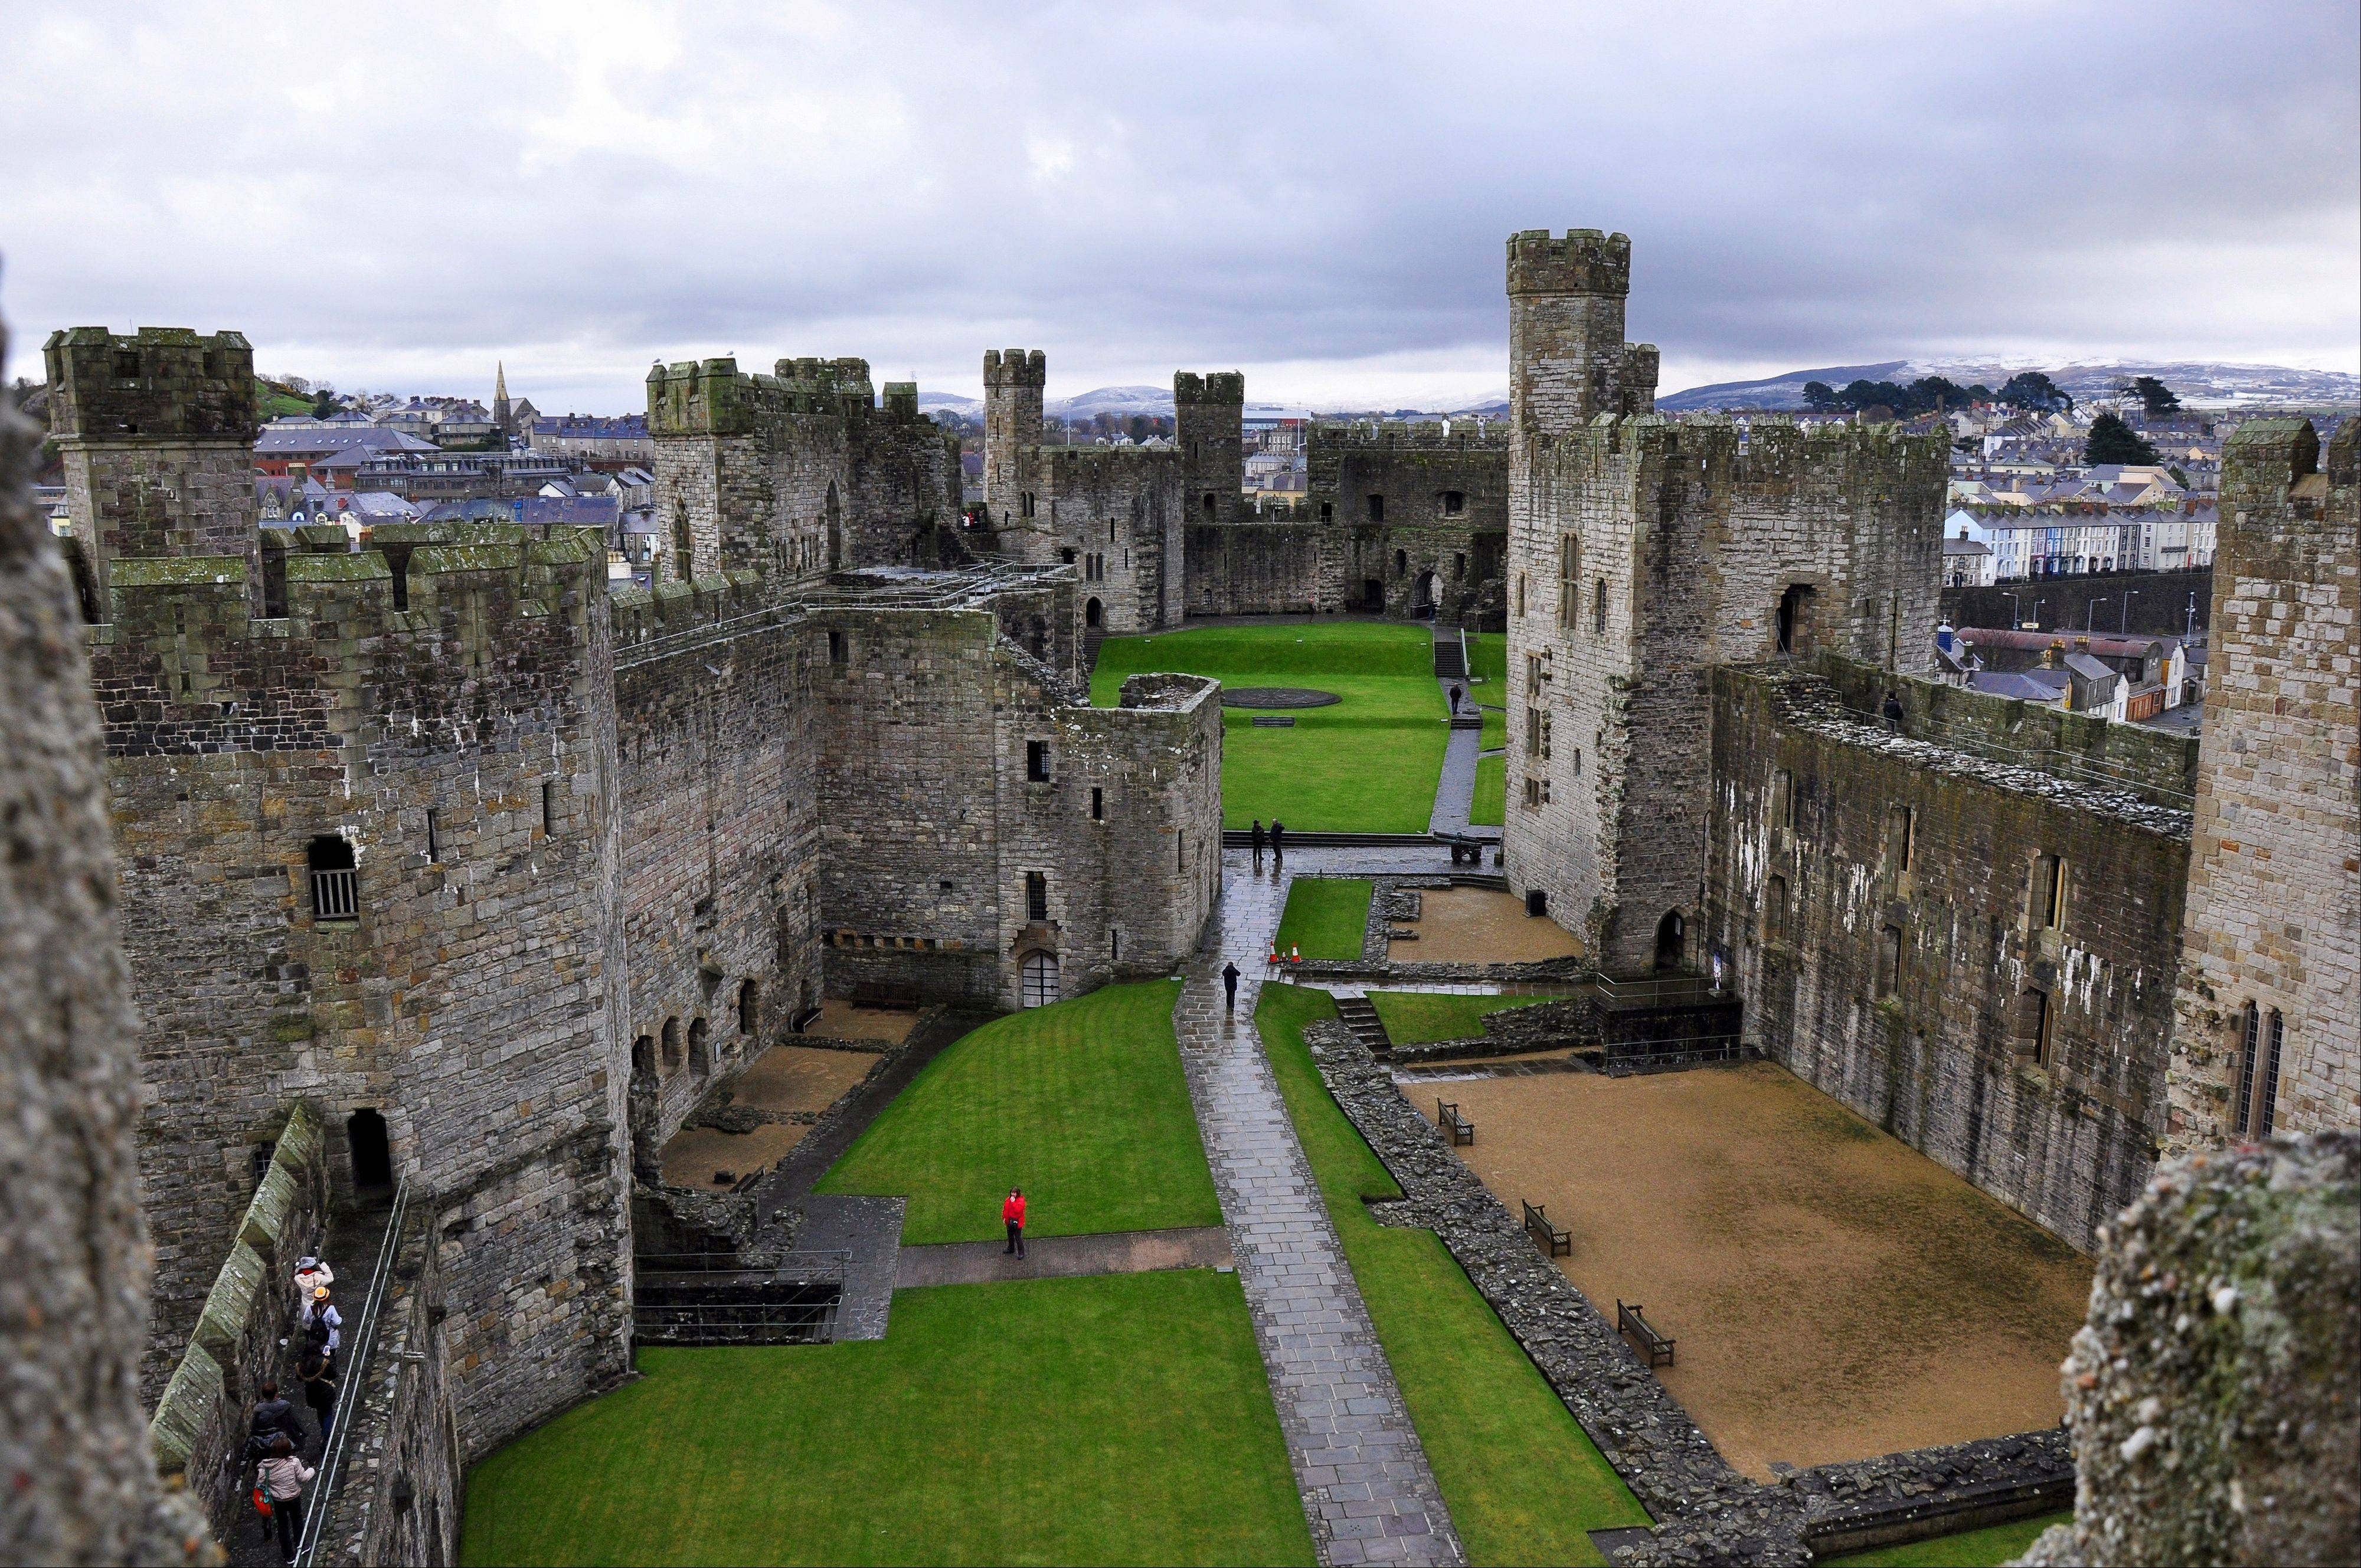 Queen Elizabeth invested Prince Charles as Prince of Wales at Caernarfon Castle in 1969, following a tradition dating back to the 13th century.